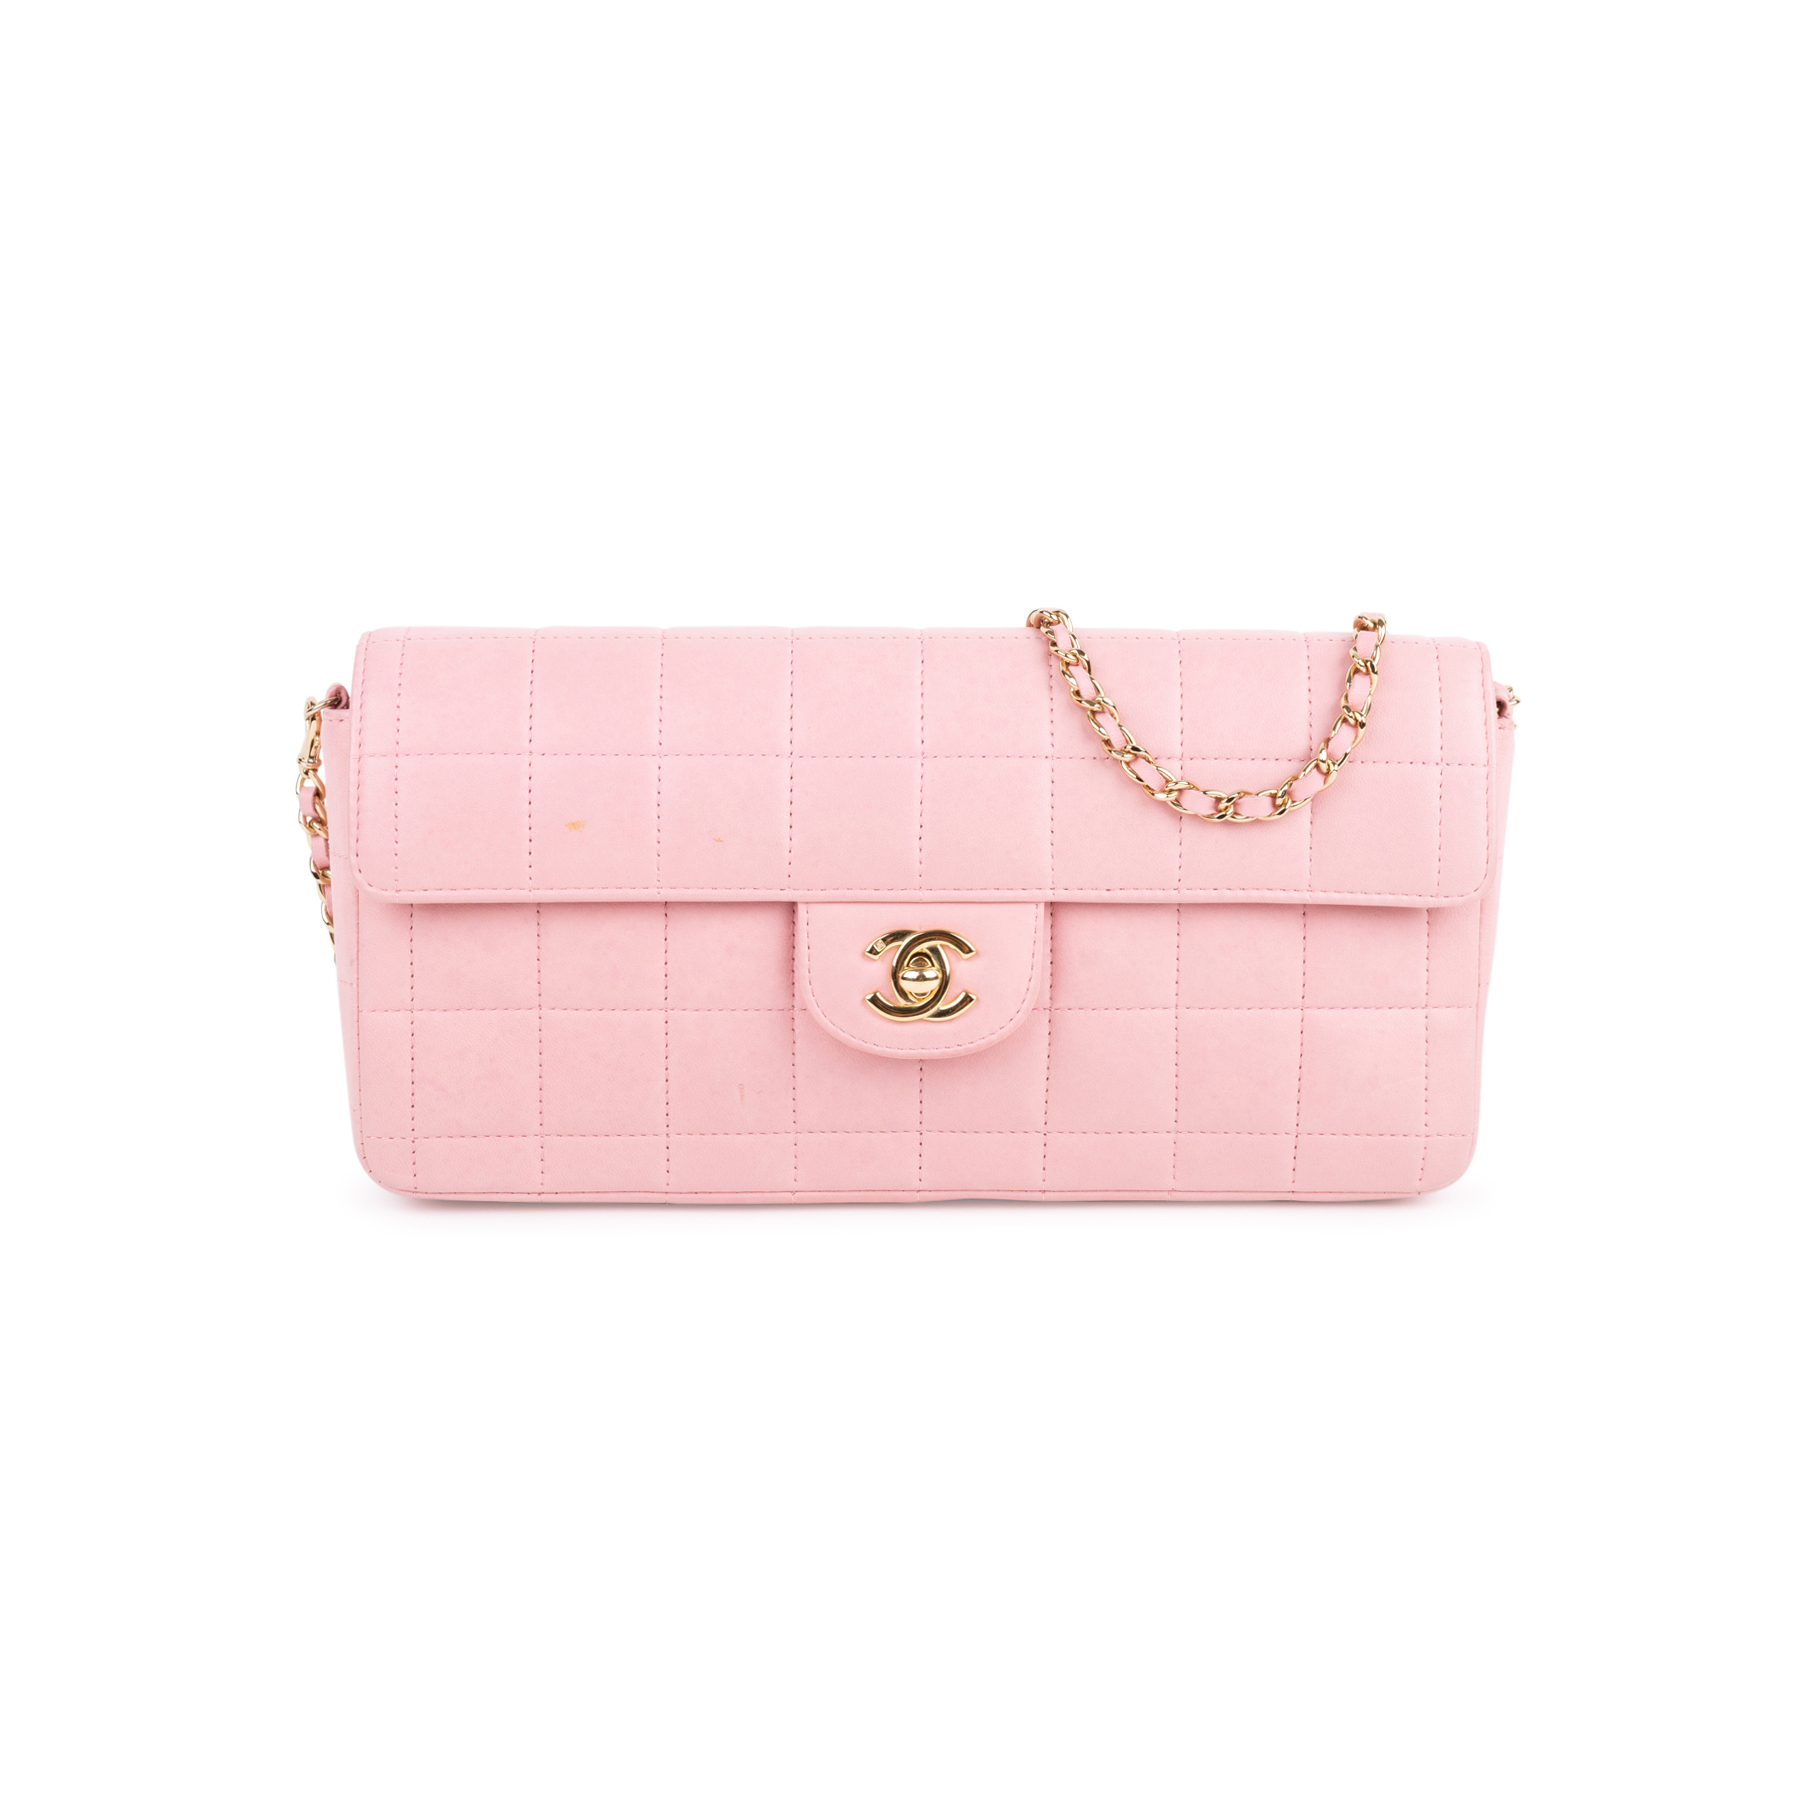 cb62aeb9f437 Authentic Second Hand Chanel Square Quilt East West Flap Bag  (PSS-097-00134) | THE FIFTH COLLECTION